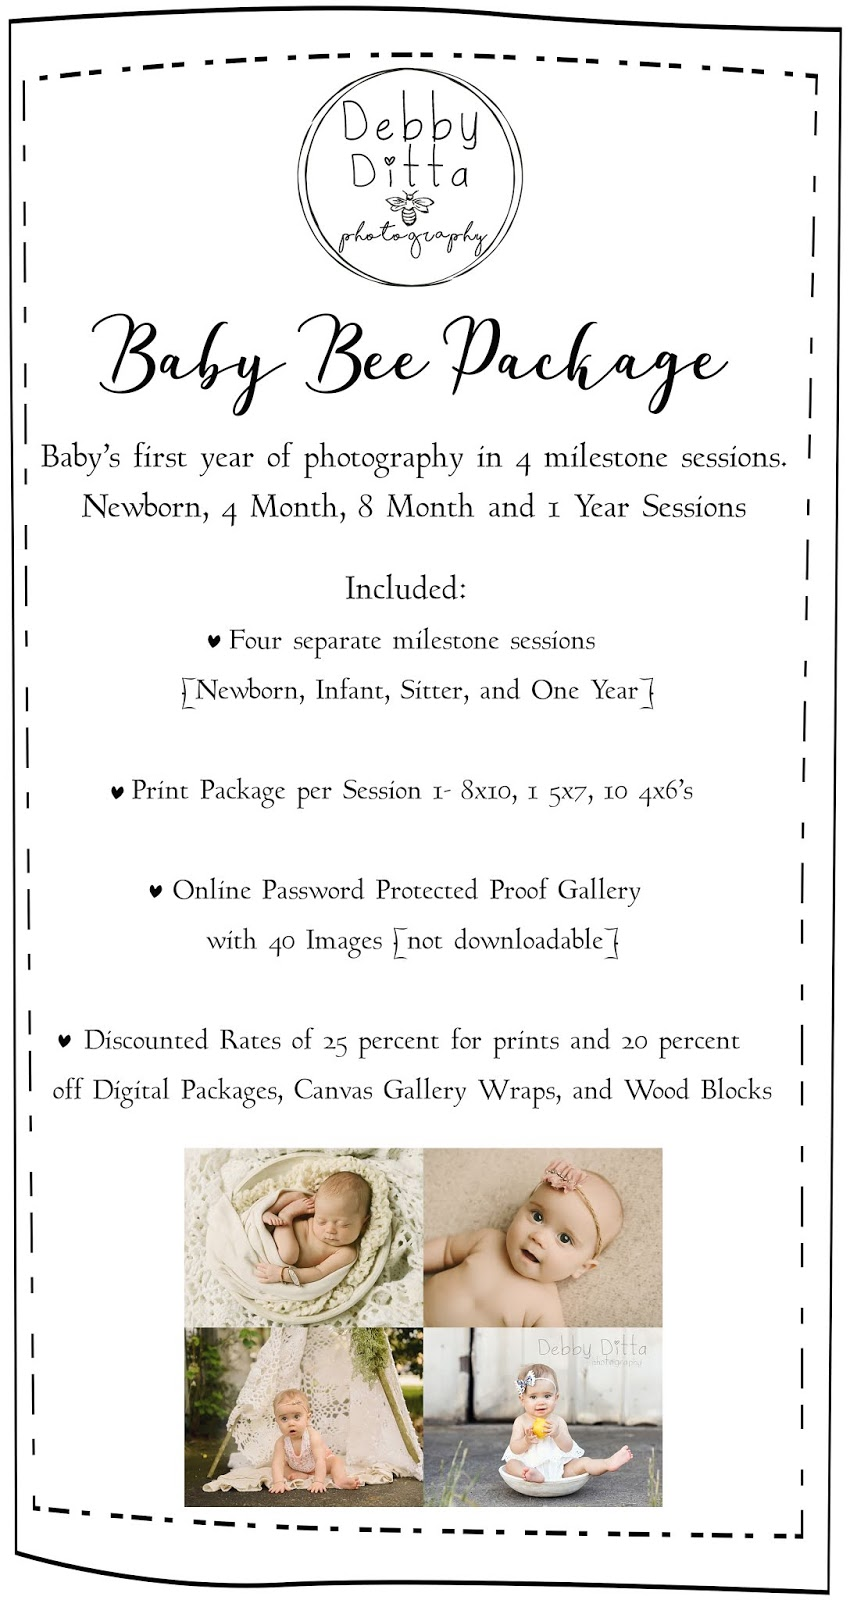 Details on sessions included in the baby bee one year package